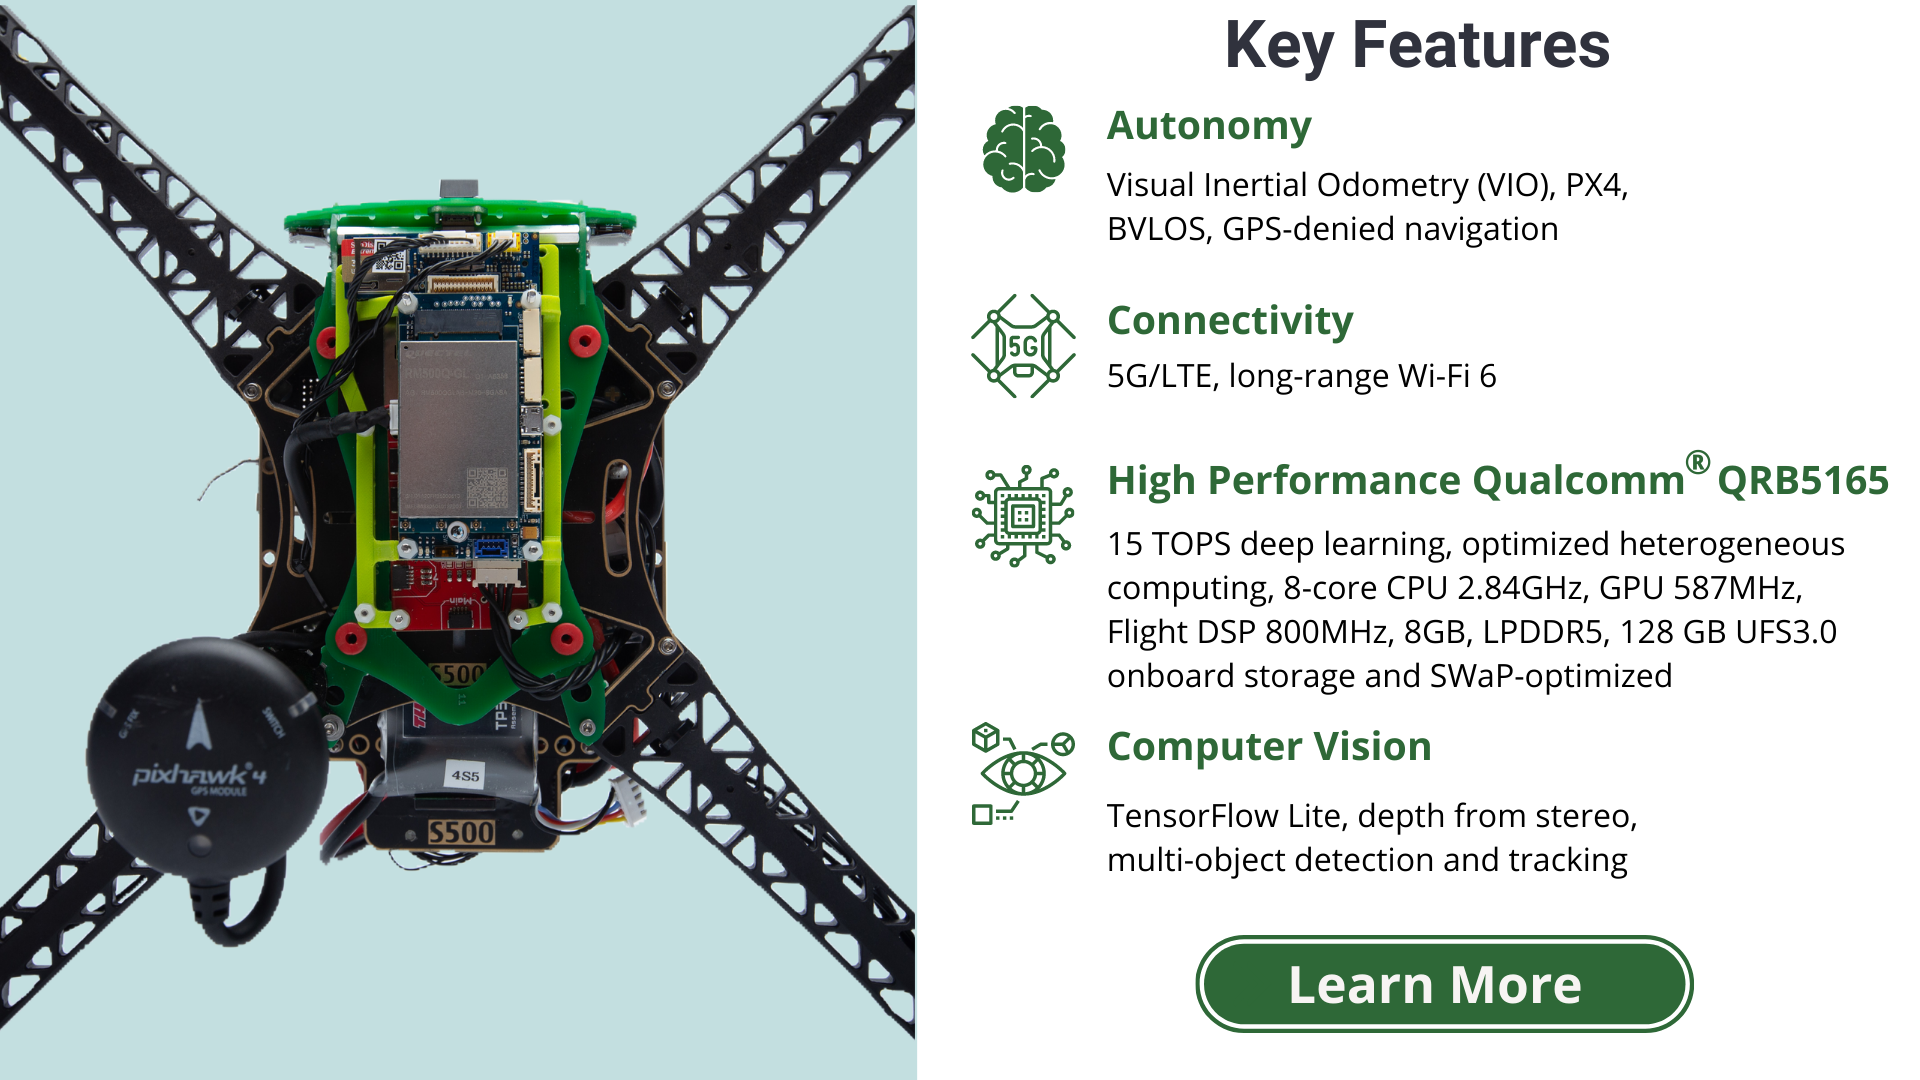 Key Features: Autonomy - visual inertial odometry (VIO), PX4, BVLOS, GPS-denied navigation. Connectivity - 5G/LTE, long-range WiFi 6. High performance Qualcomm QRB5165 - 15 TOPs deep learning, optimized heterogeneous computing, 8-core CPU, 2.84GHz, GPU 587MHz, Flight DSP 800MHz, 8GB, LPDDR5, 128 GB UFS3.0 onboard storage and SWAP-optimized. Computer Vision - TensorFlow Lite, depth from stereo, multi-object detection and tracking. learn more